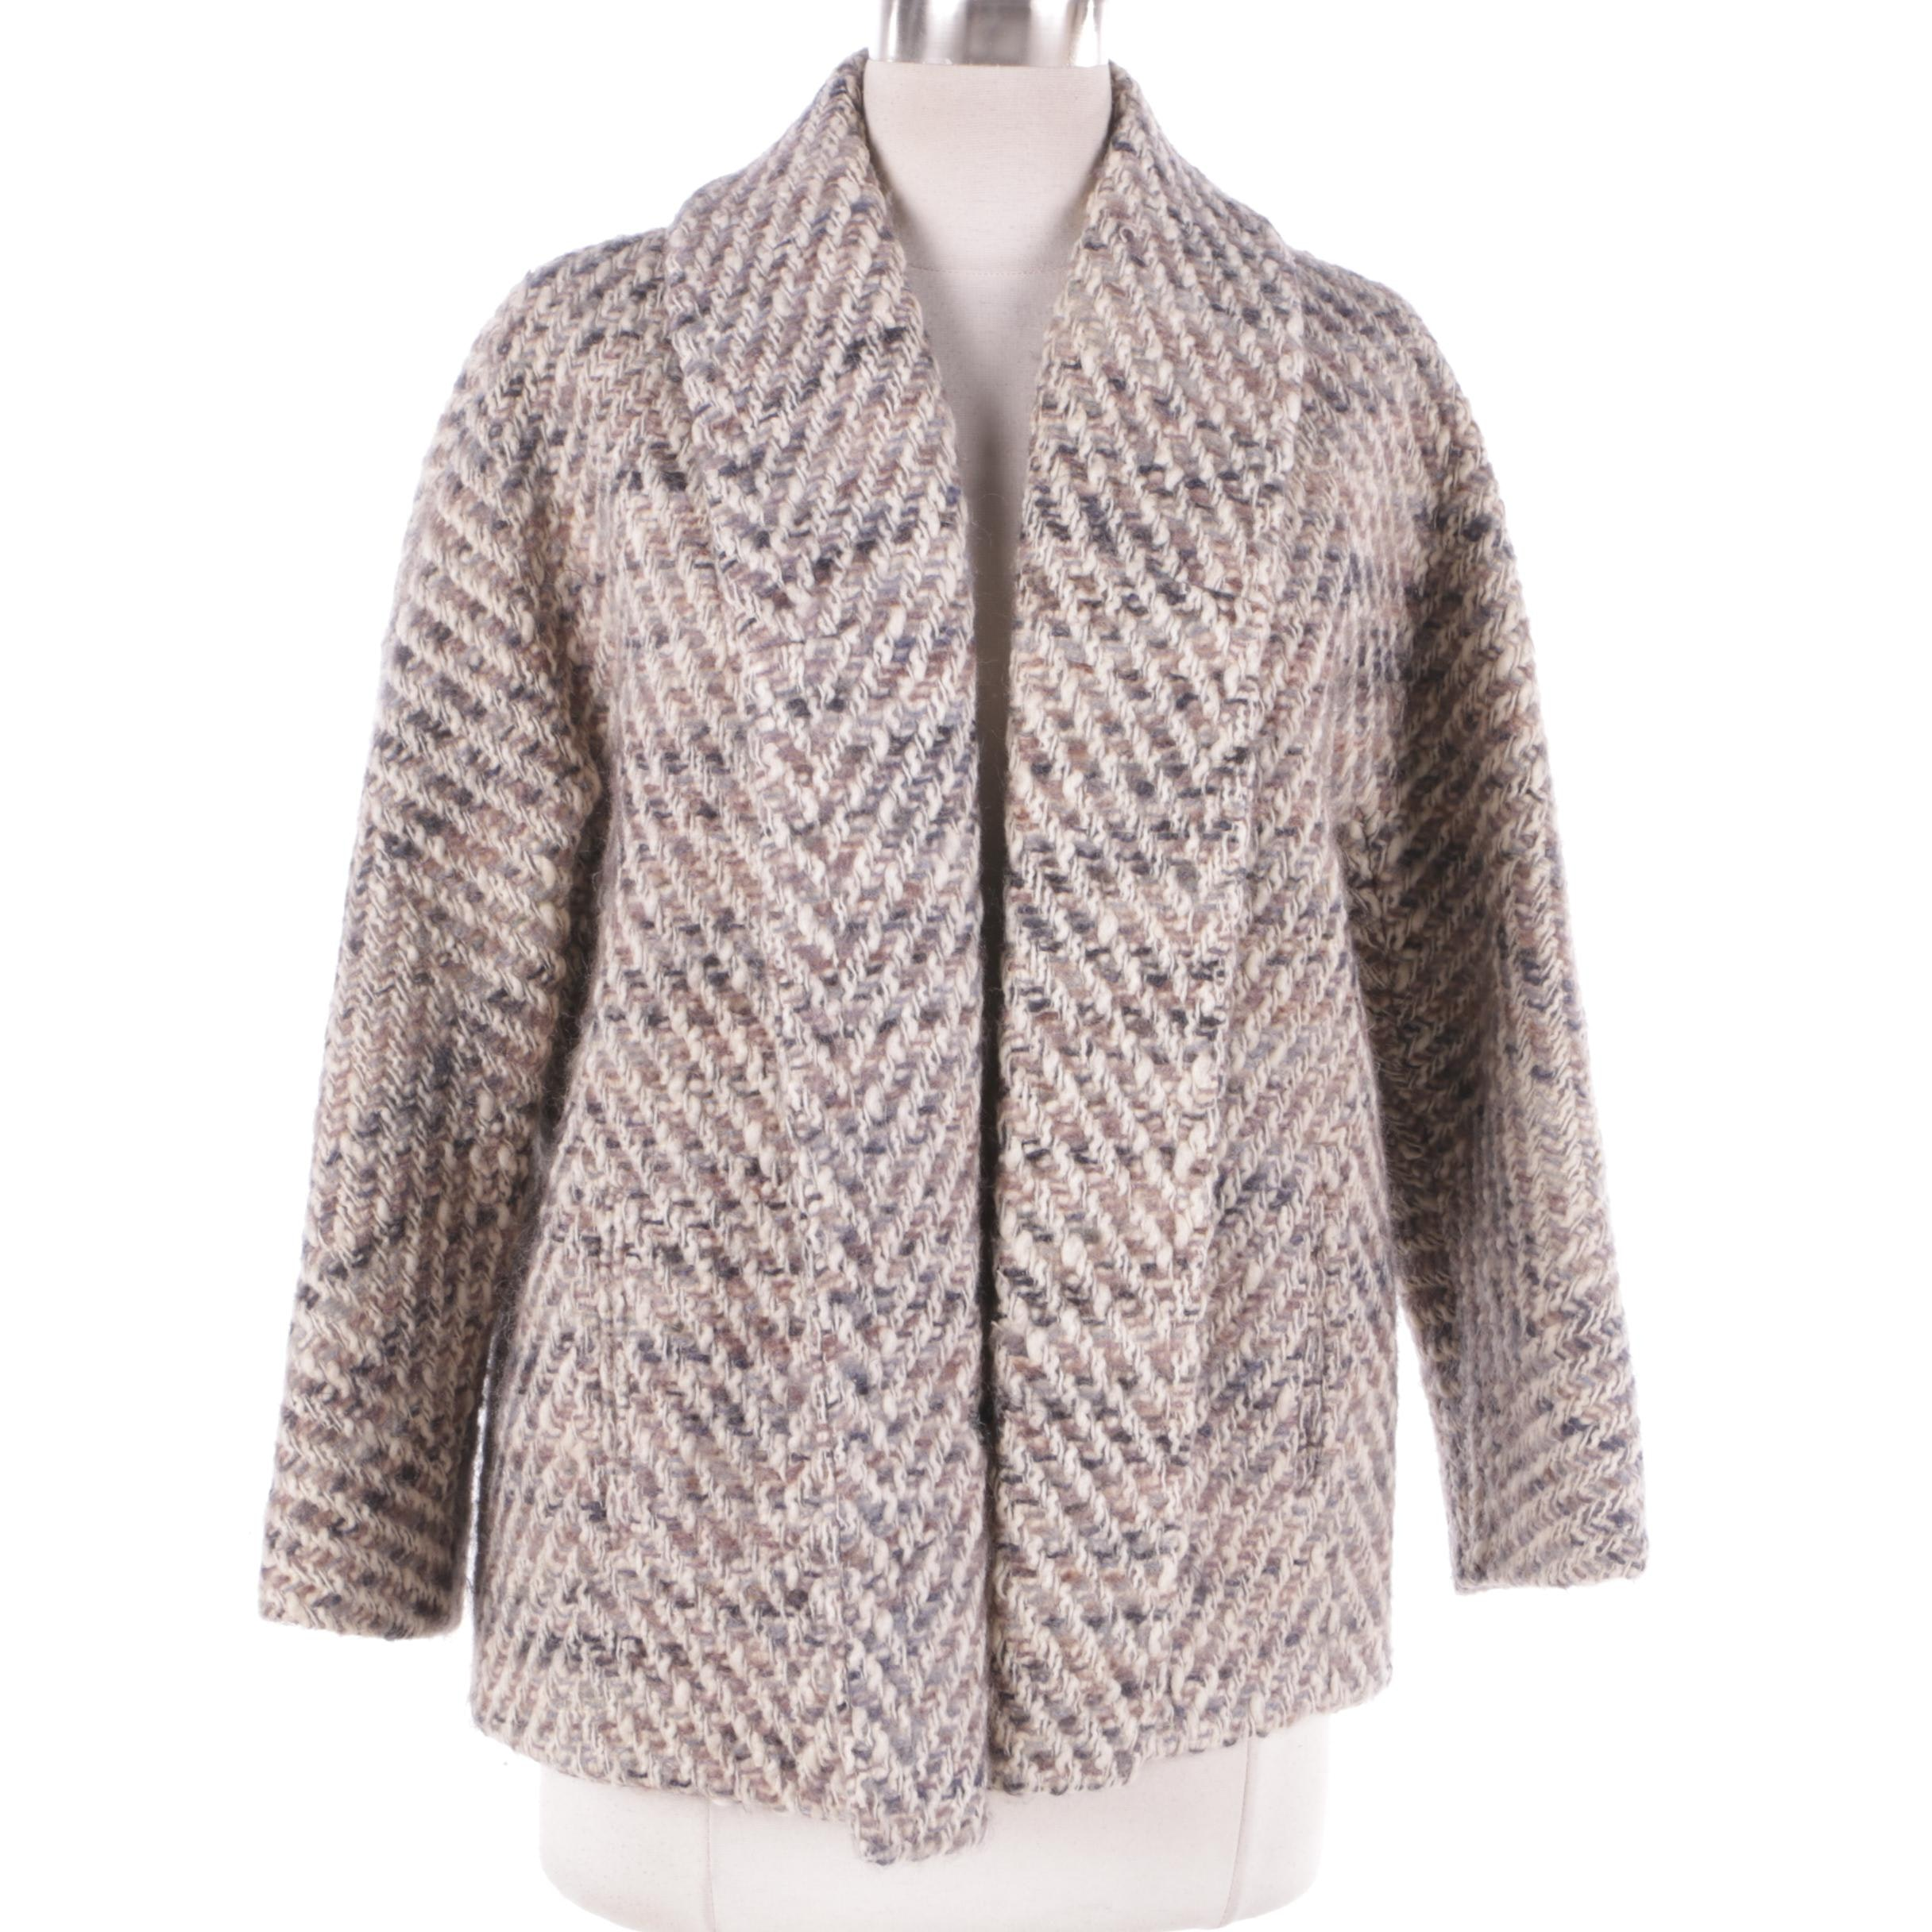 Women's Multicolored Wool Jacket from The Ladies Shop